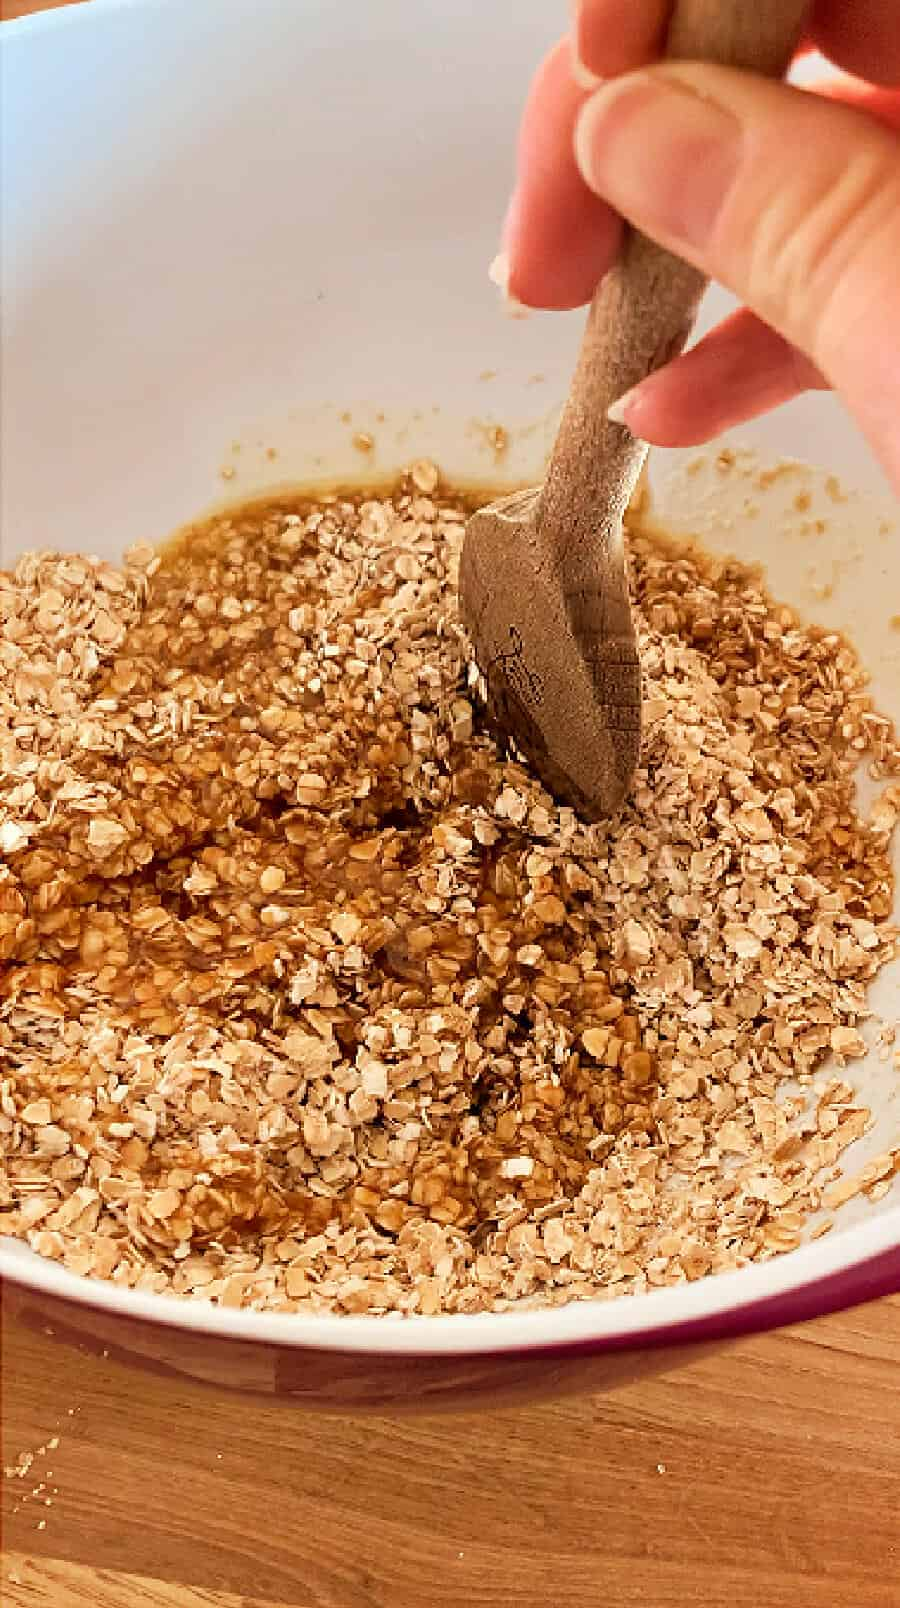 Image showing stirring the butter sugar mixture into oats using a wooden spoon.